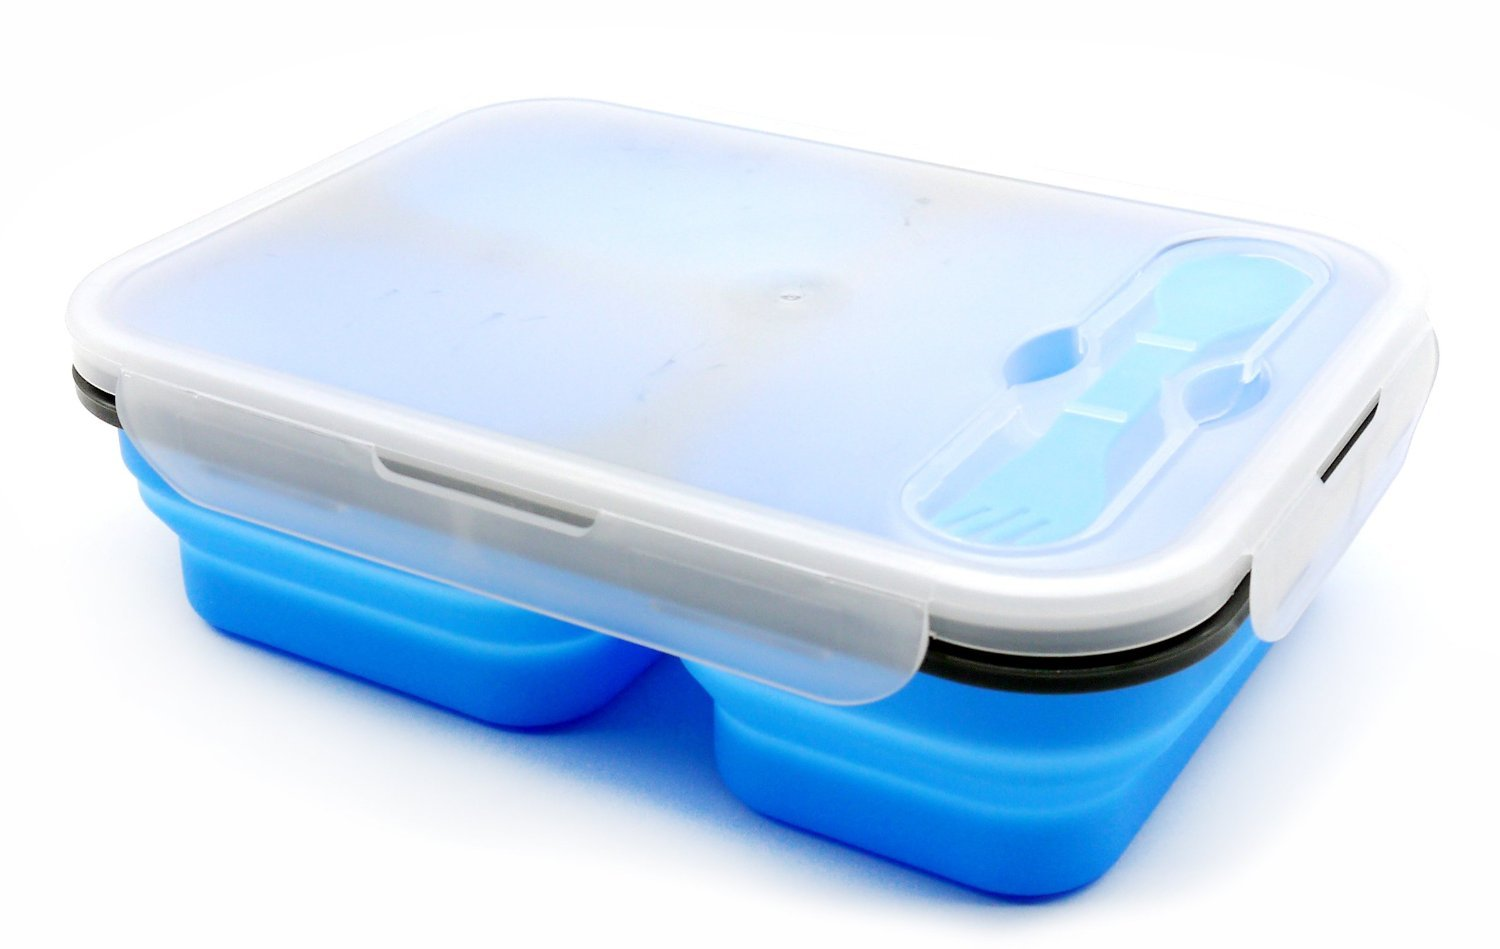 AFancy Bento Box Lunch Box Collapsible BPA-Free Lunch Bento Box with 3 Compartments and Cutlery Food Container - Blue